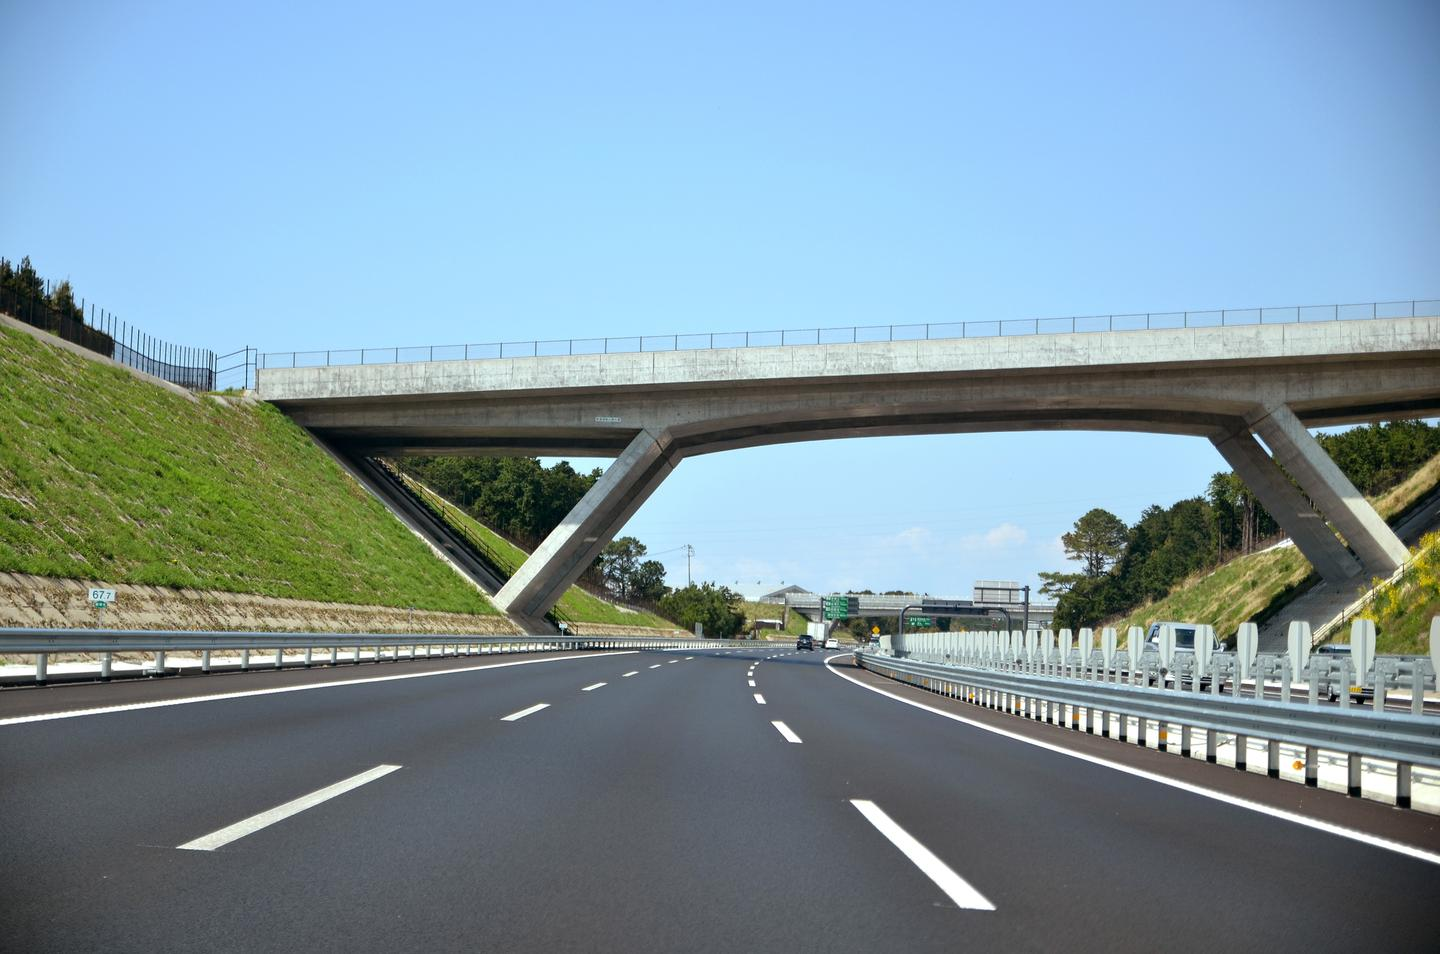 Graphene additives may help boost the longevity of road surfaces